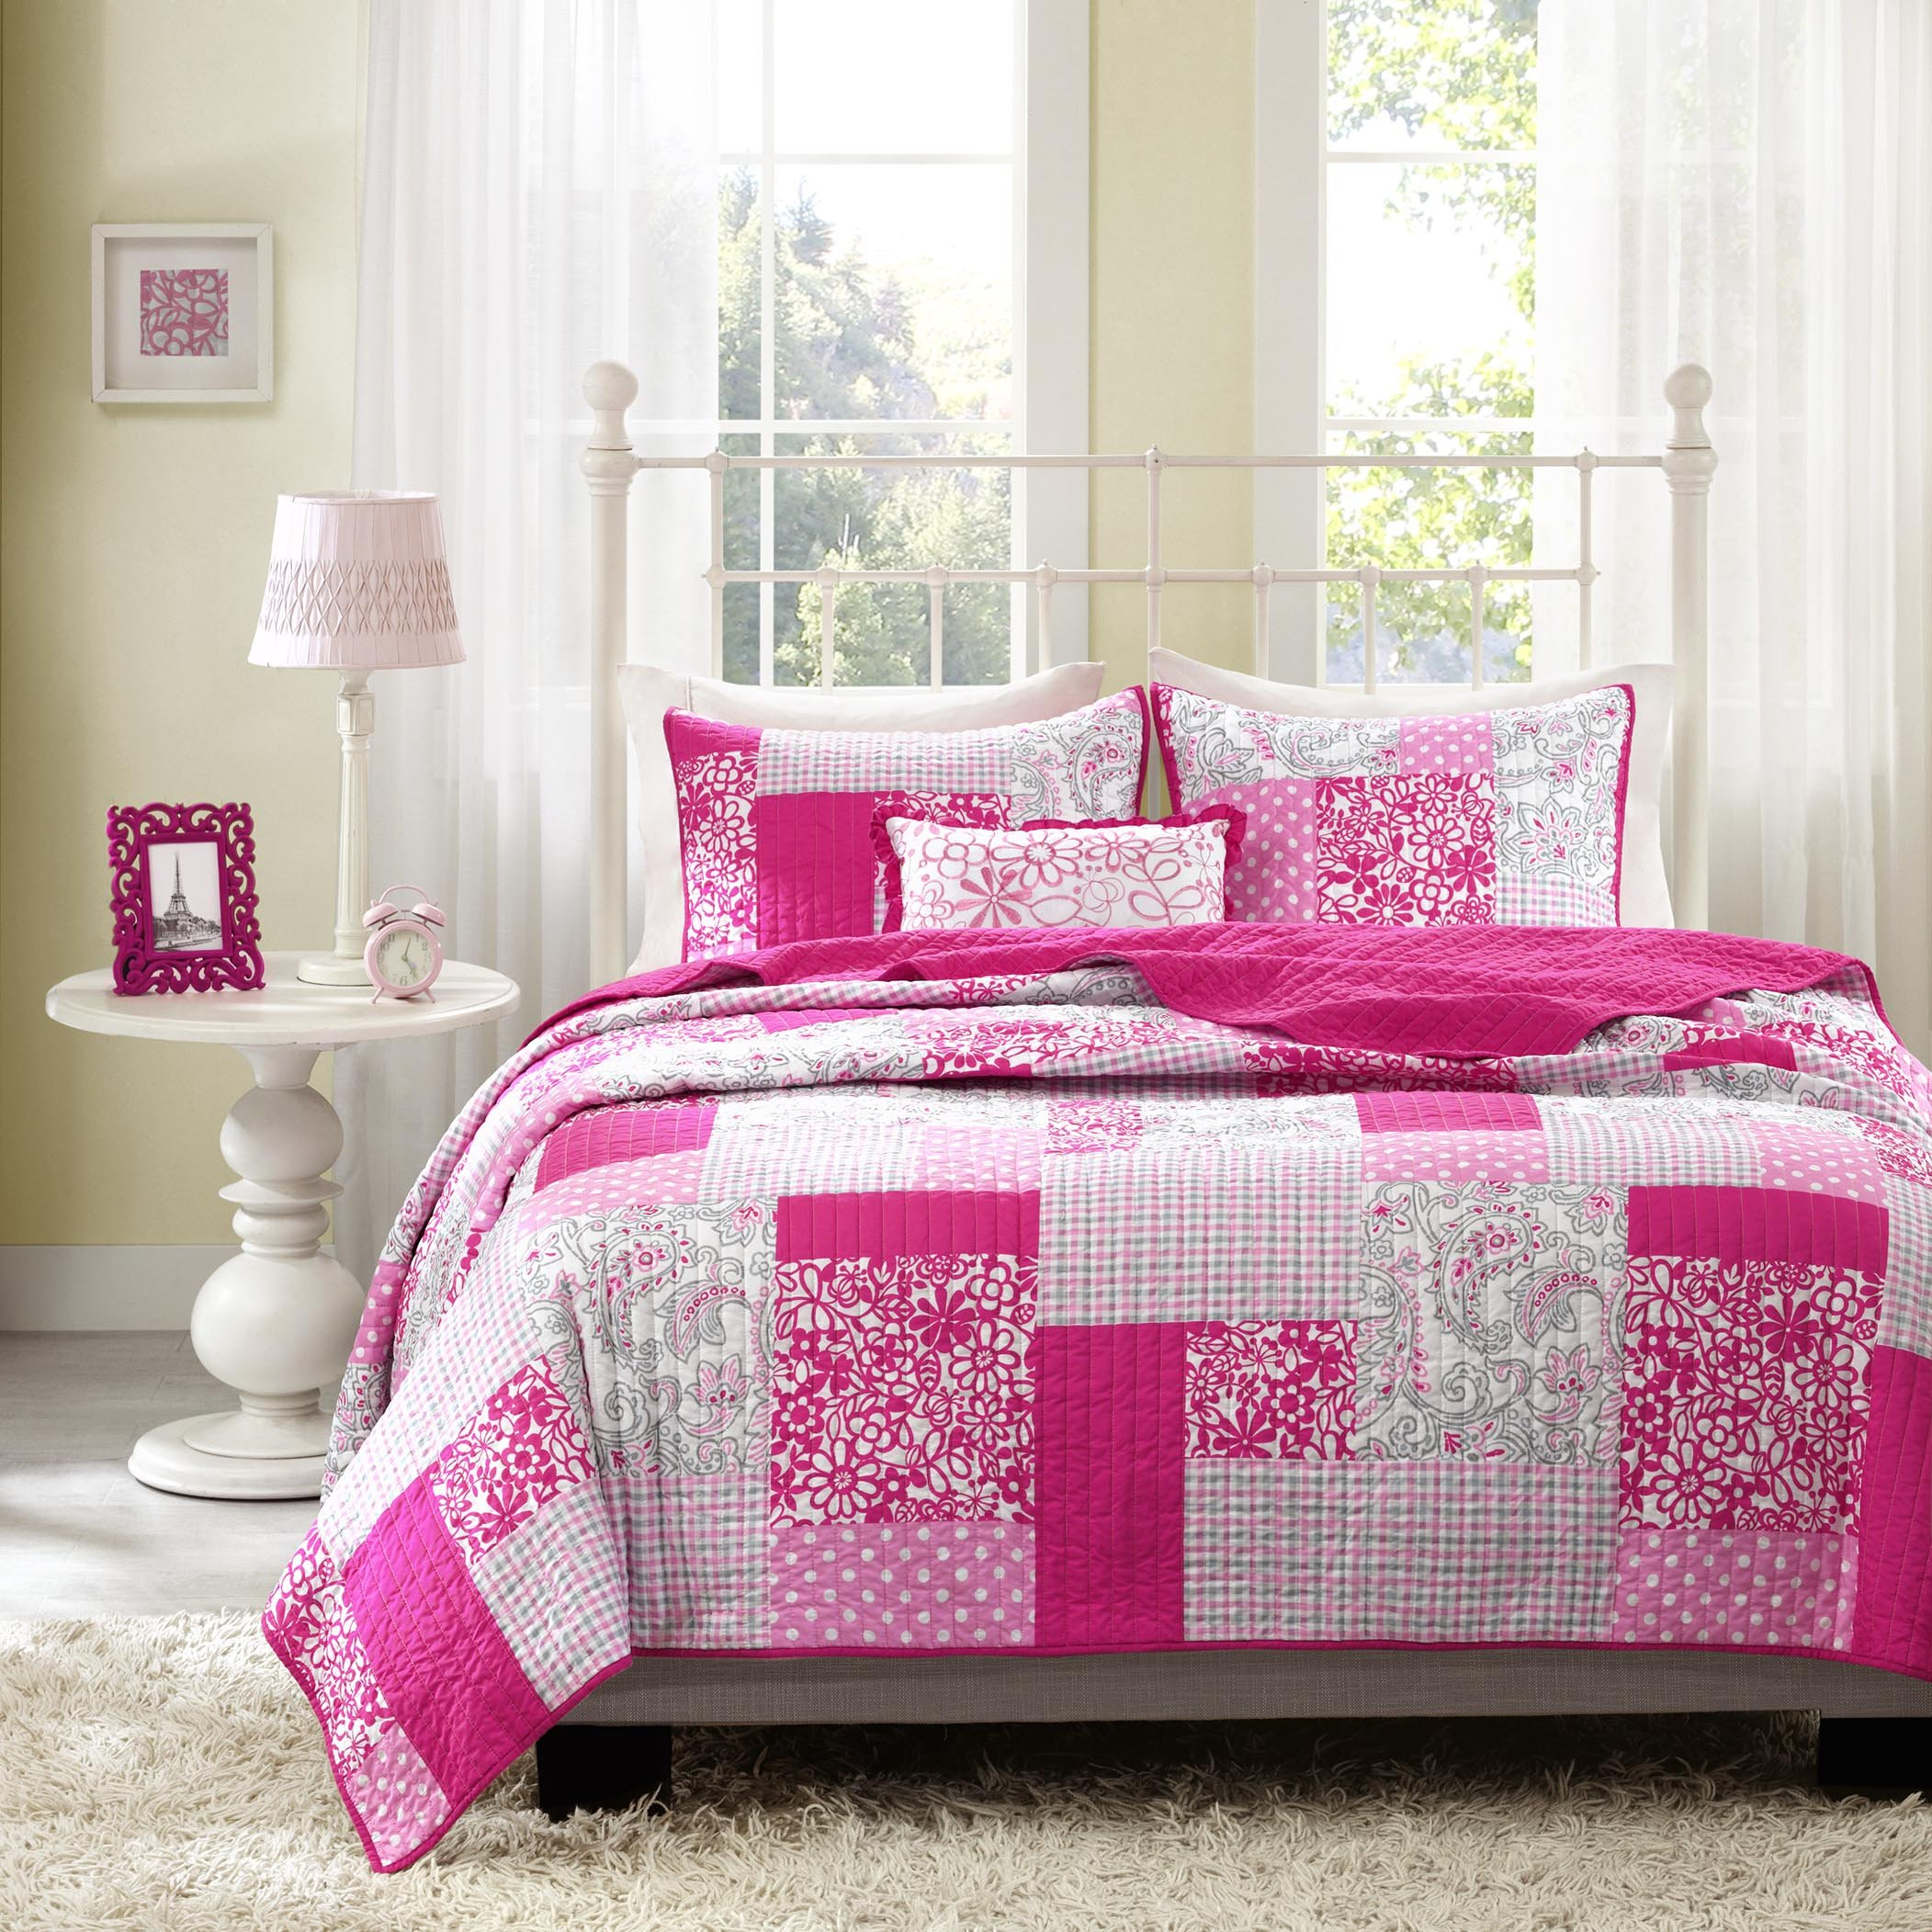 Mi-Zone Abbey Twin/Twin XL Girls Quilt Bedding Set - Hot Pink, Pieced Floral, Polka Dot, Paisley - 3 Piece Teen Girl Bedding Quilt Coverlets - Ultra Soft Microfiber Bed Quilts Quilted Coverlet by Mi-Zone